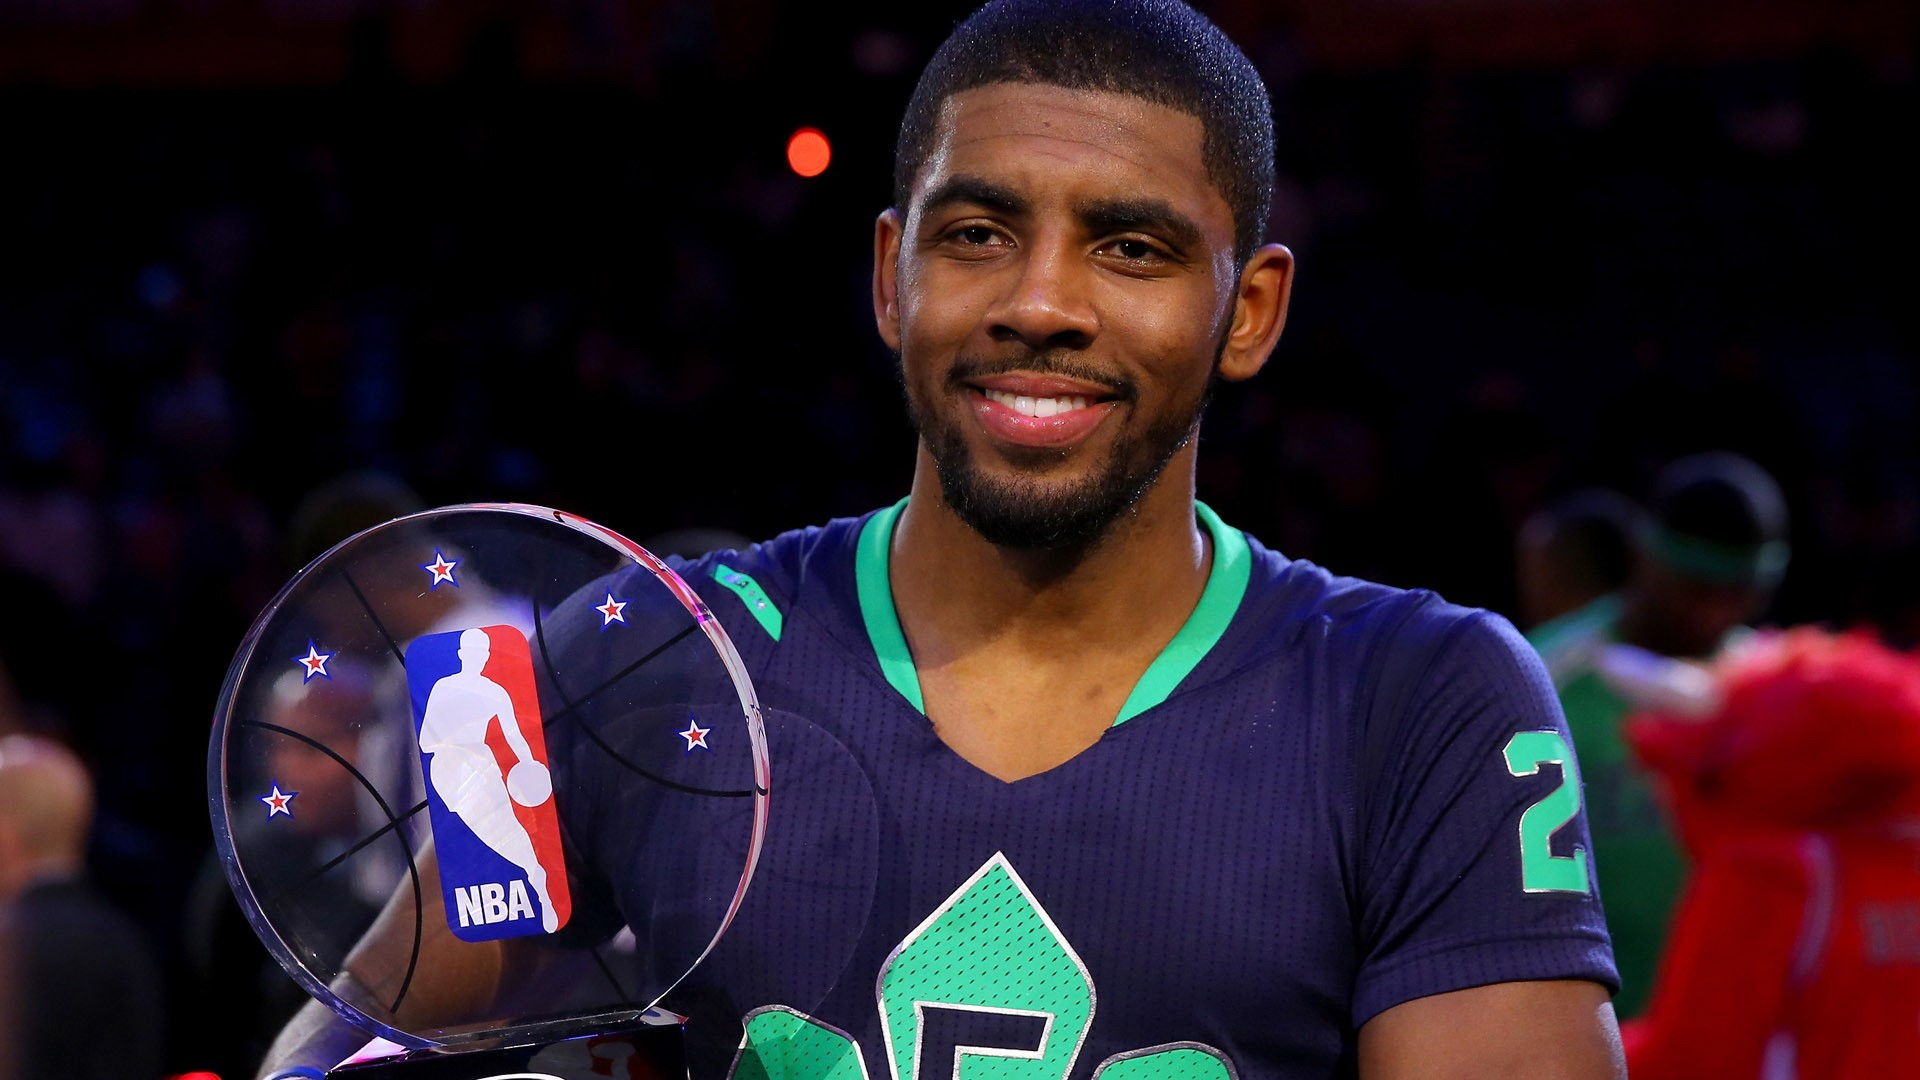 Kyrie Irving Photo Gallery